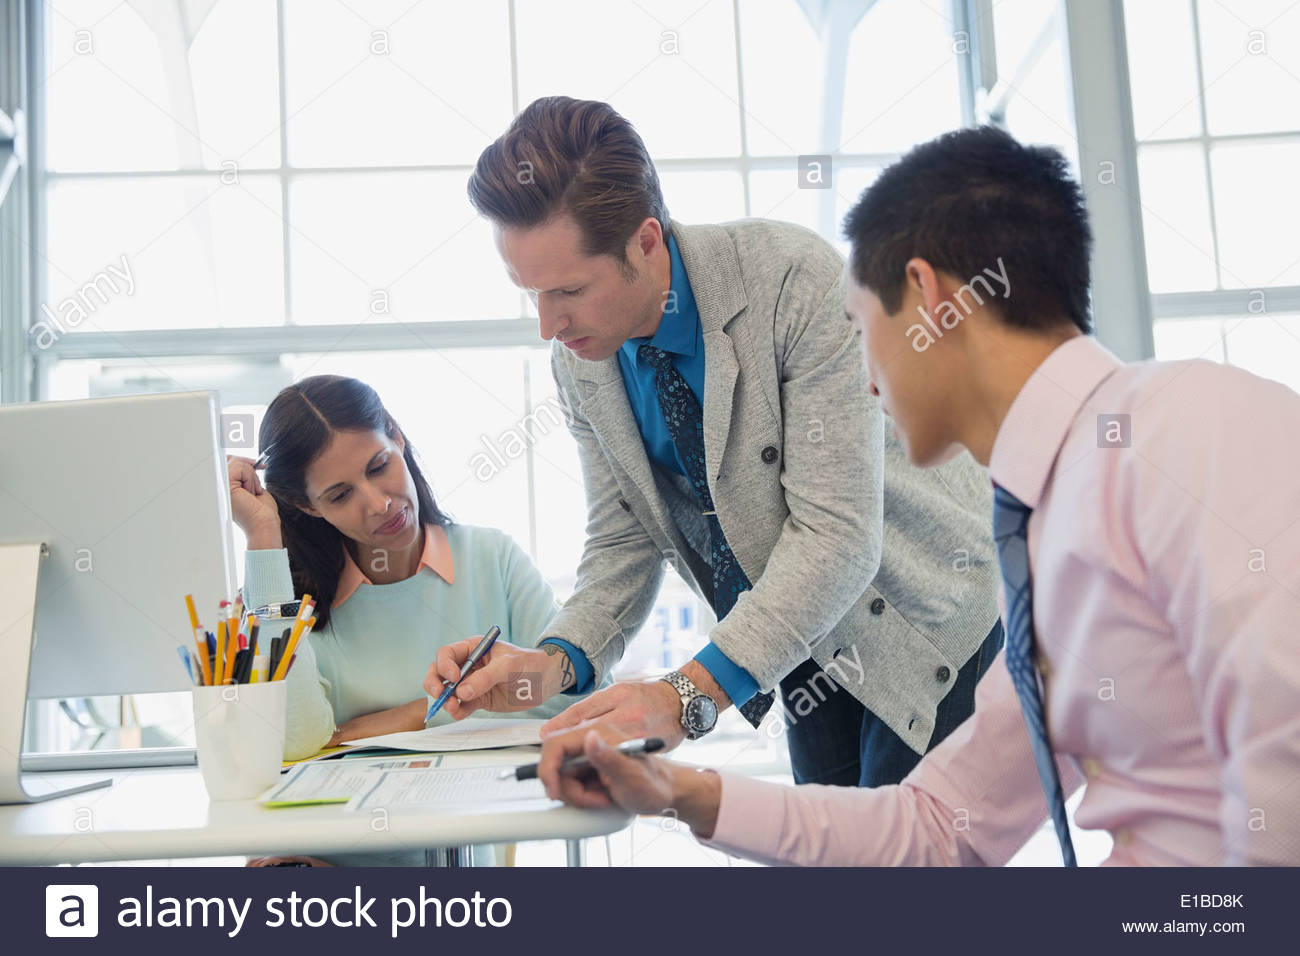 Business people meeting at desk in office - Stock Image